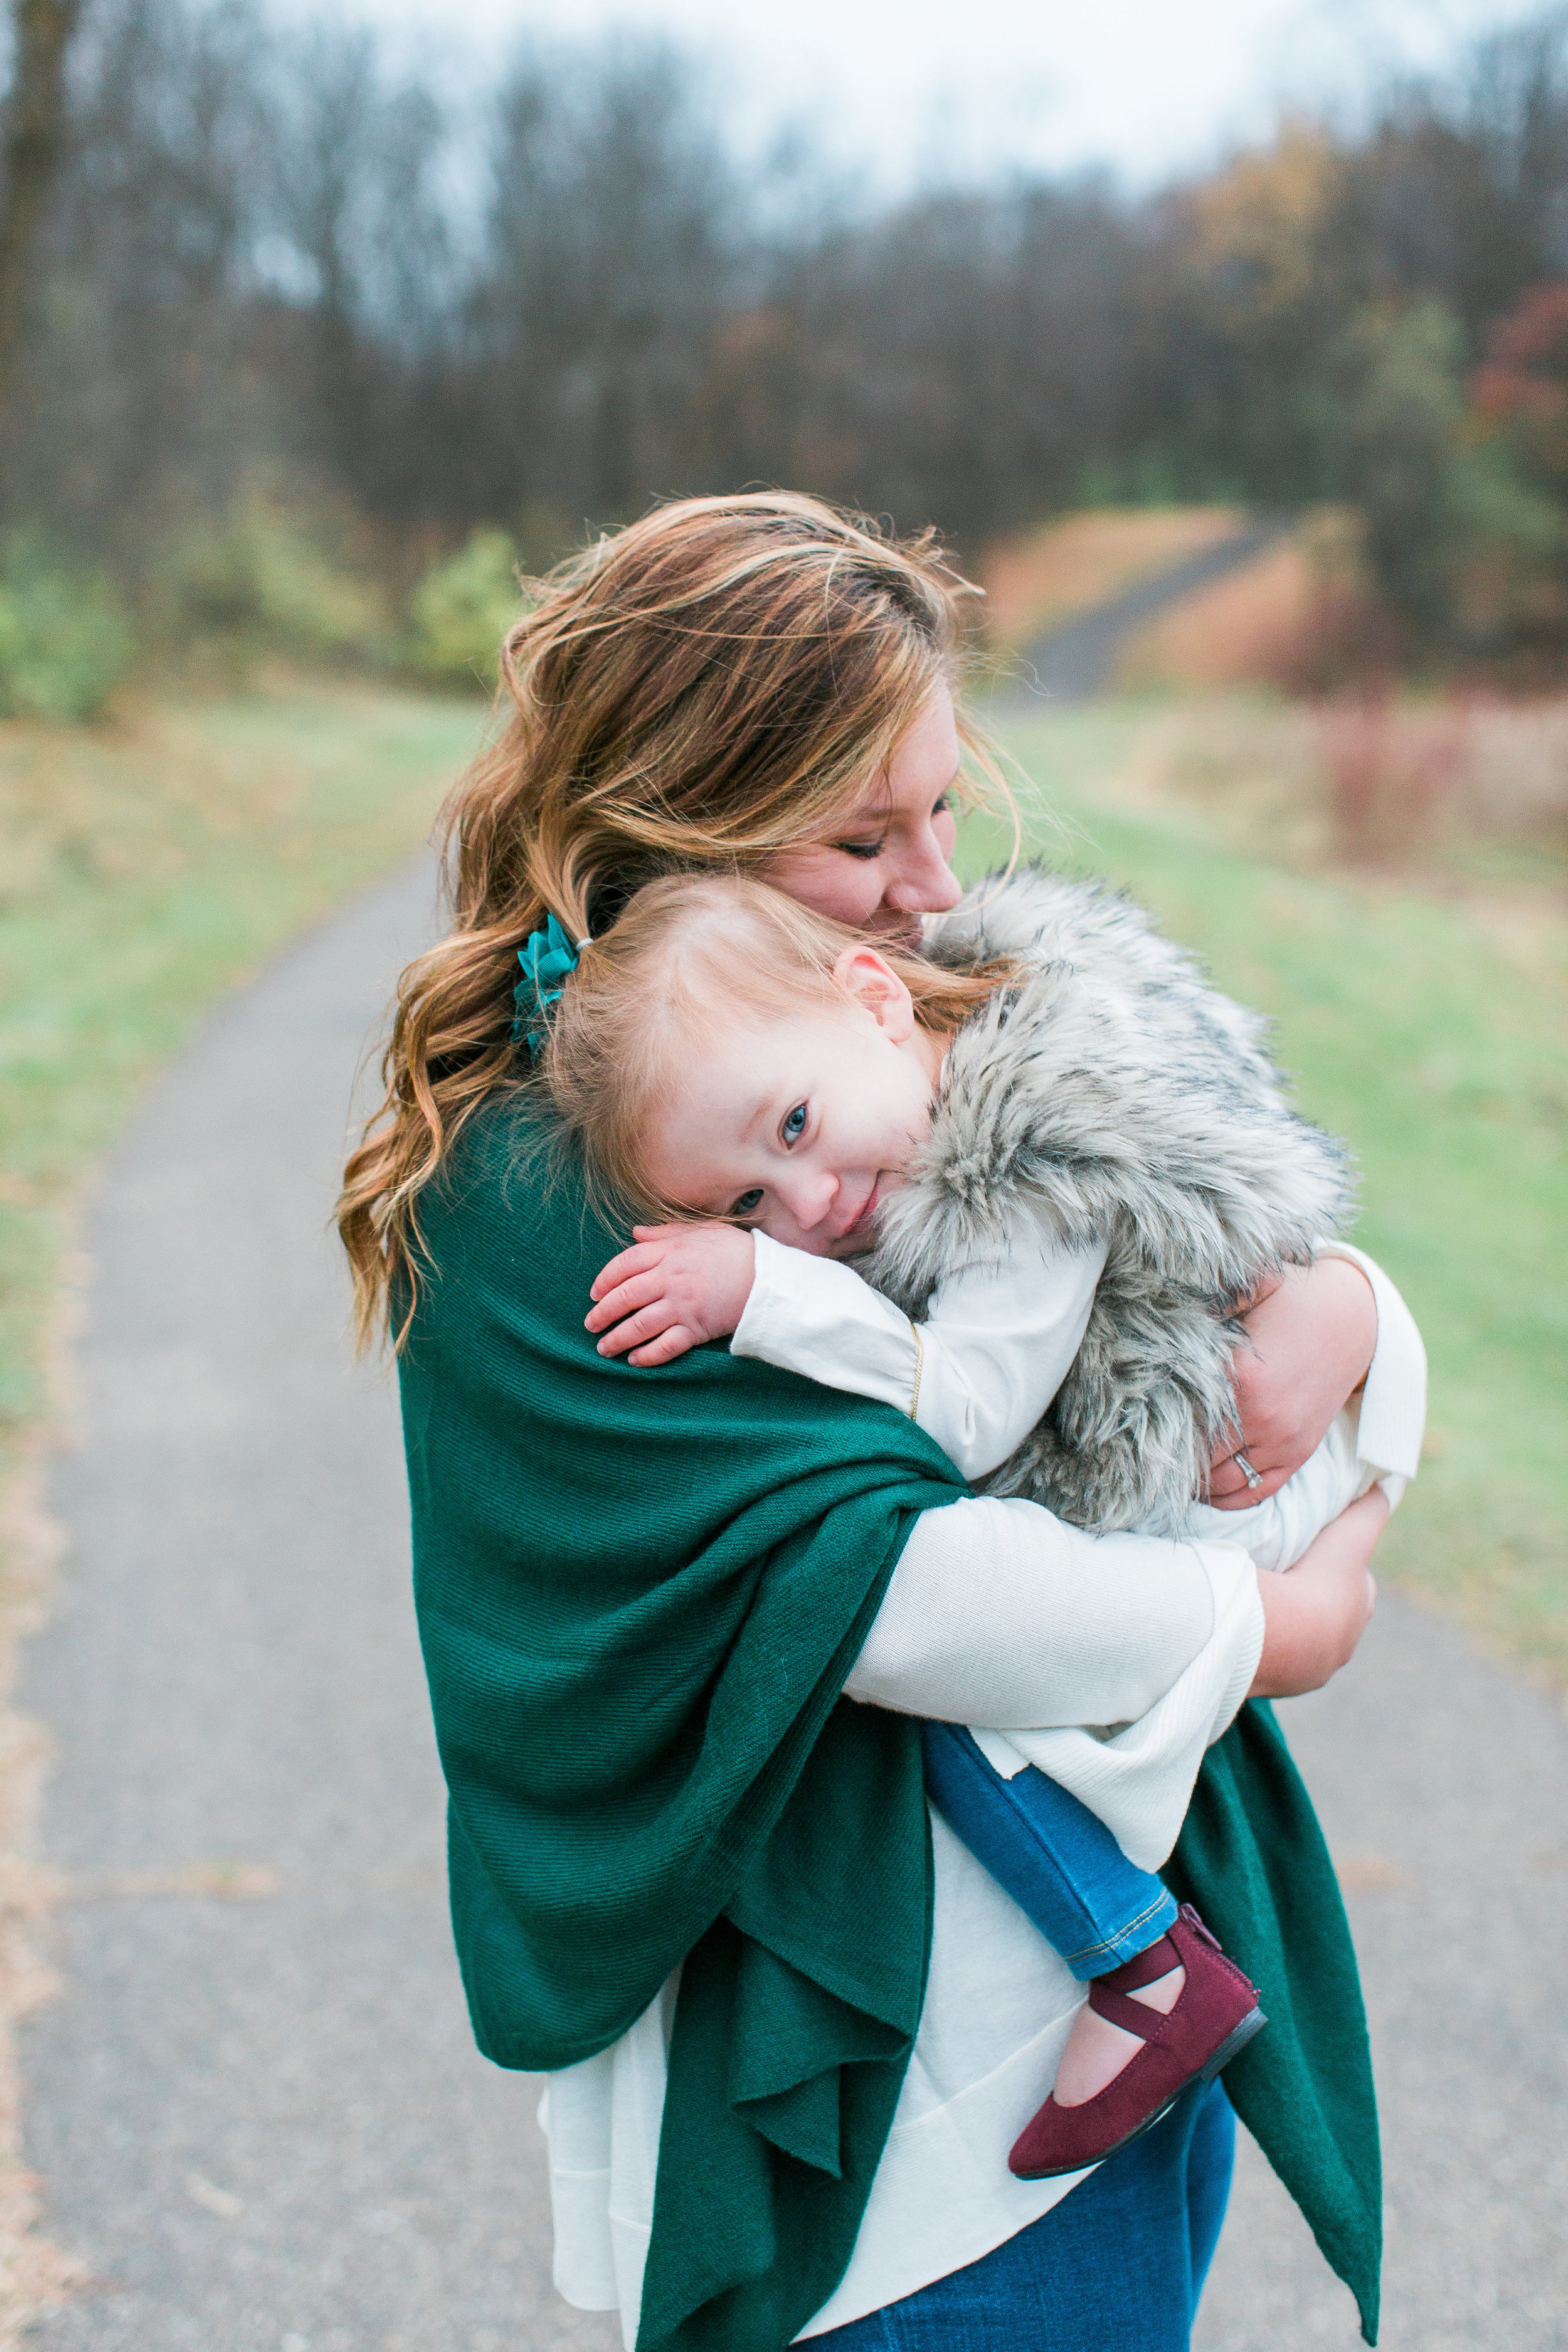 Mom and toddler hugging in lifestyle Minnesota family photo Minnesota family photographer Mallory Kiesow Photography